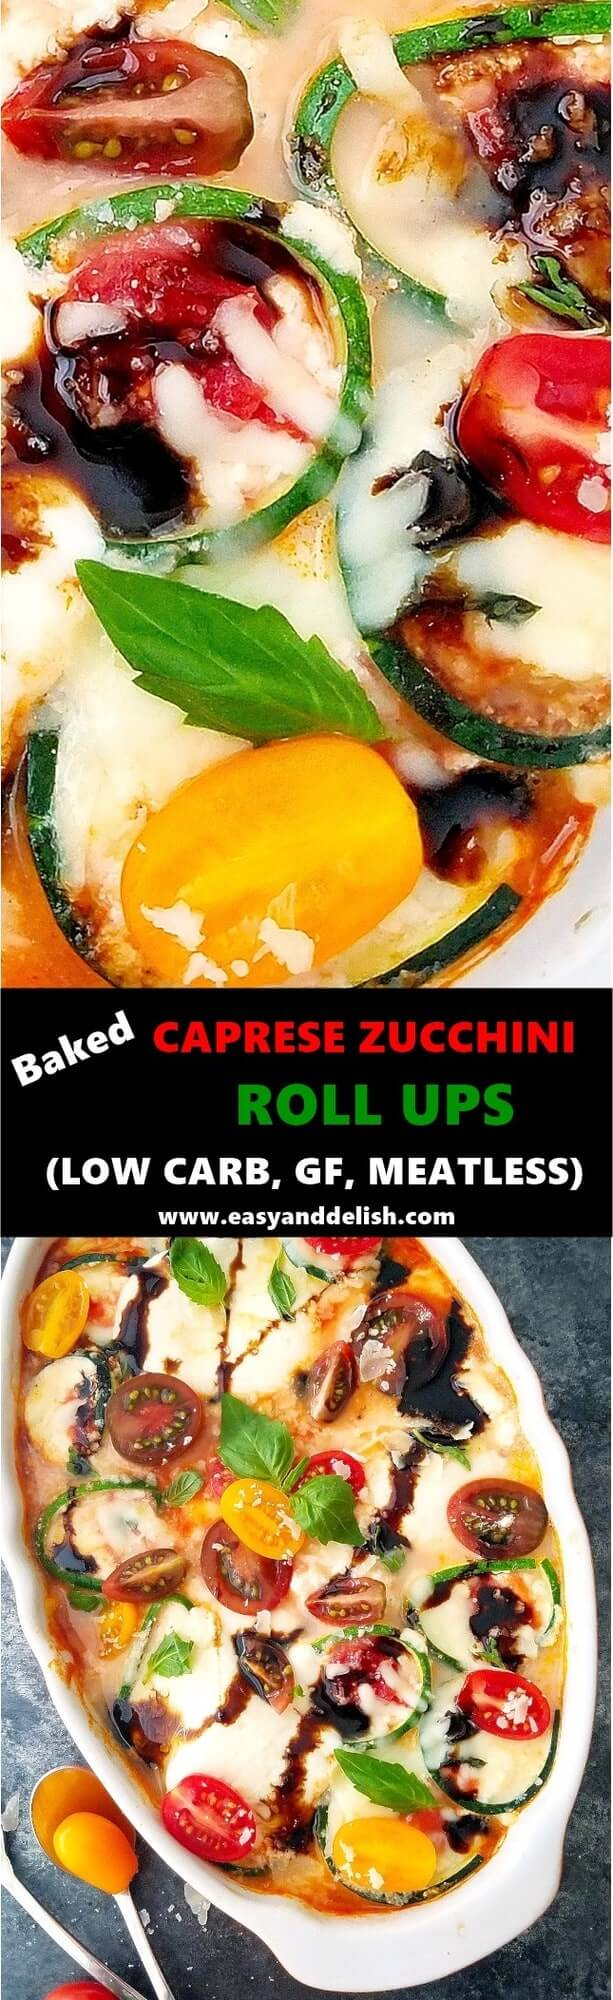 Cobined close up image of baked caprese zucchini roll ups